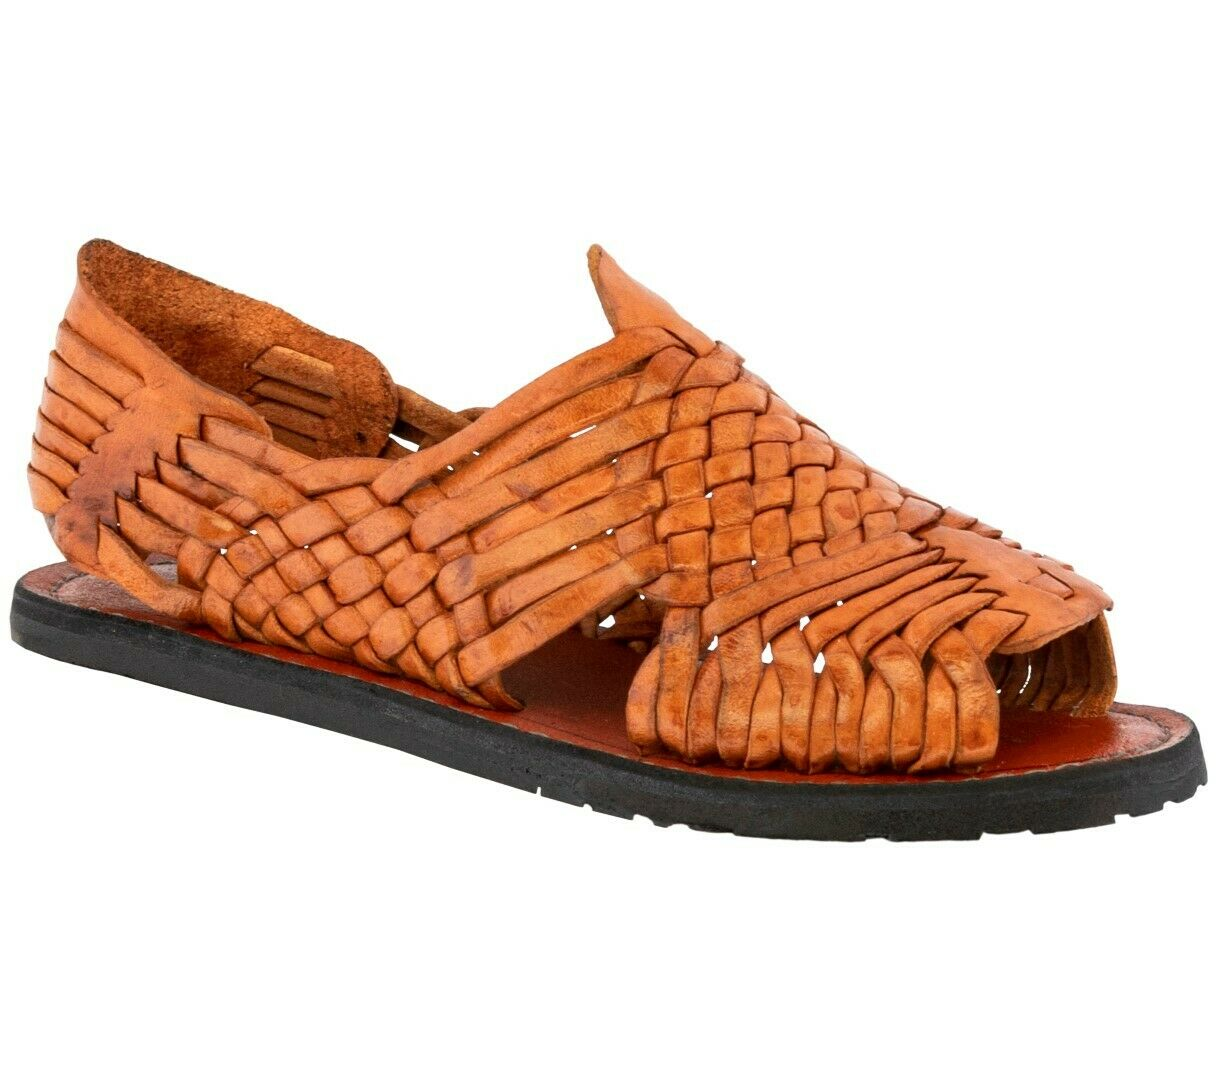 Mens Chedron Mexican Huarache Authentic Leather Sandals Handmade Slip On